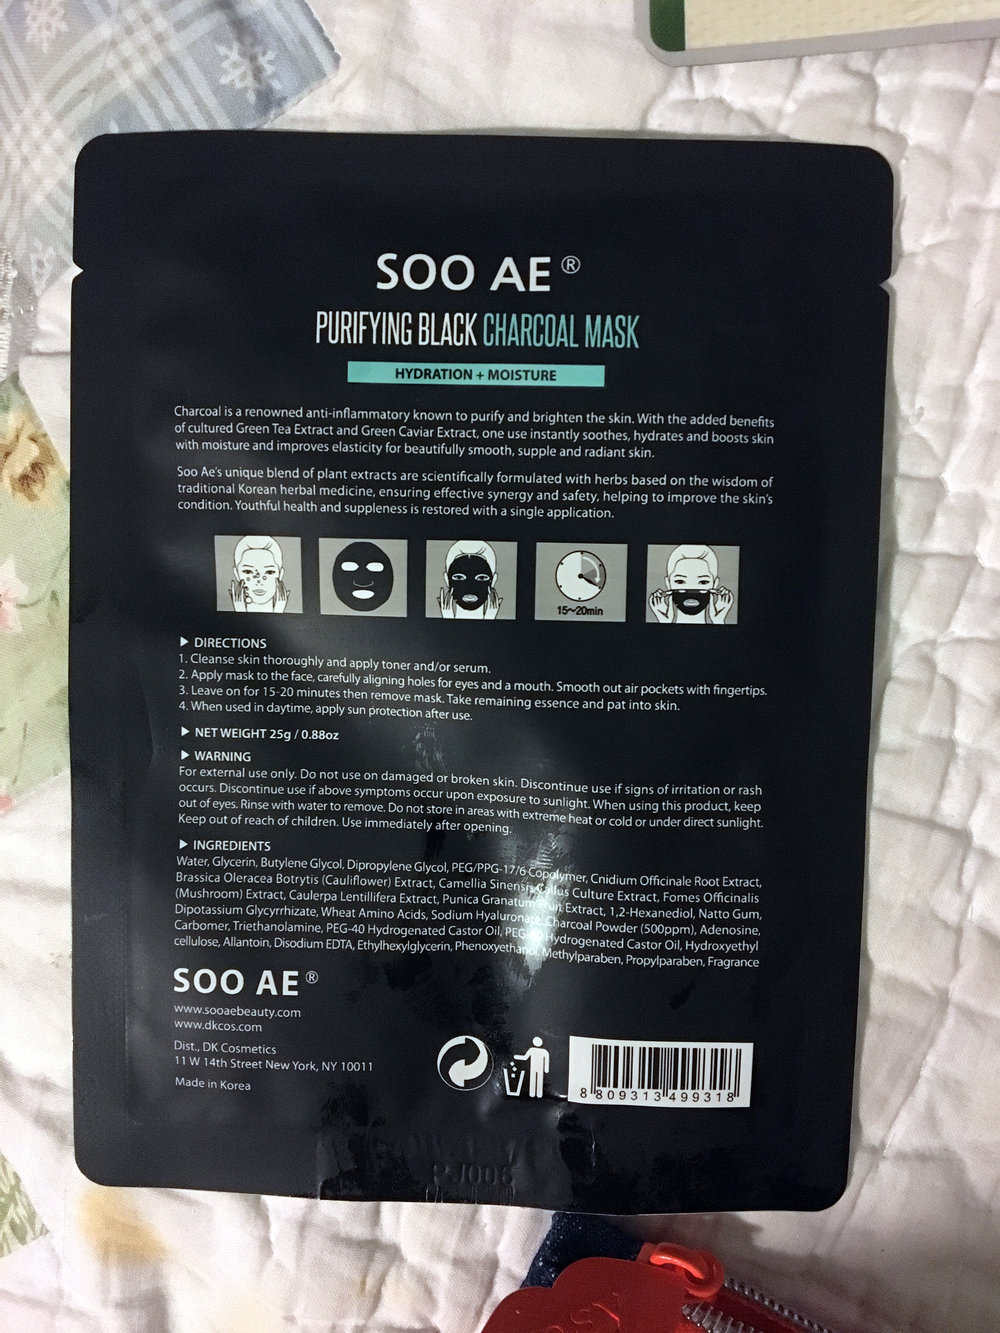 Ipsy-February-Review-Soo-AE-Sheet-Mask-Duo-Purifying-Black-Charcoal-Mask-LINDATENCHITRAN-2-1616x1080.jpg